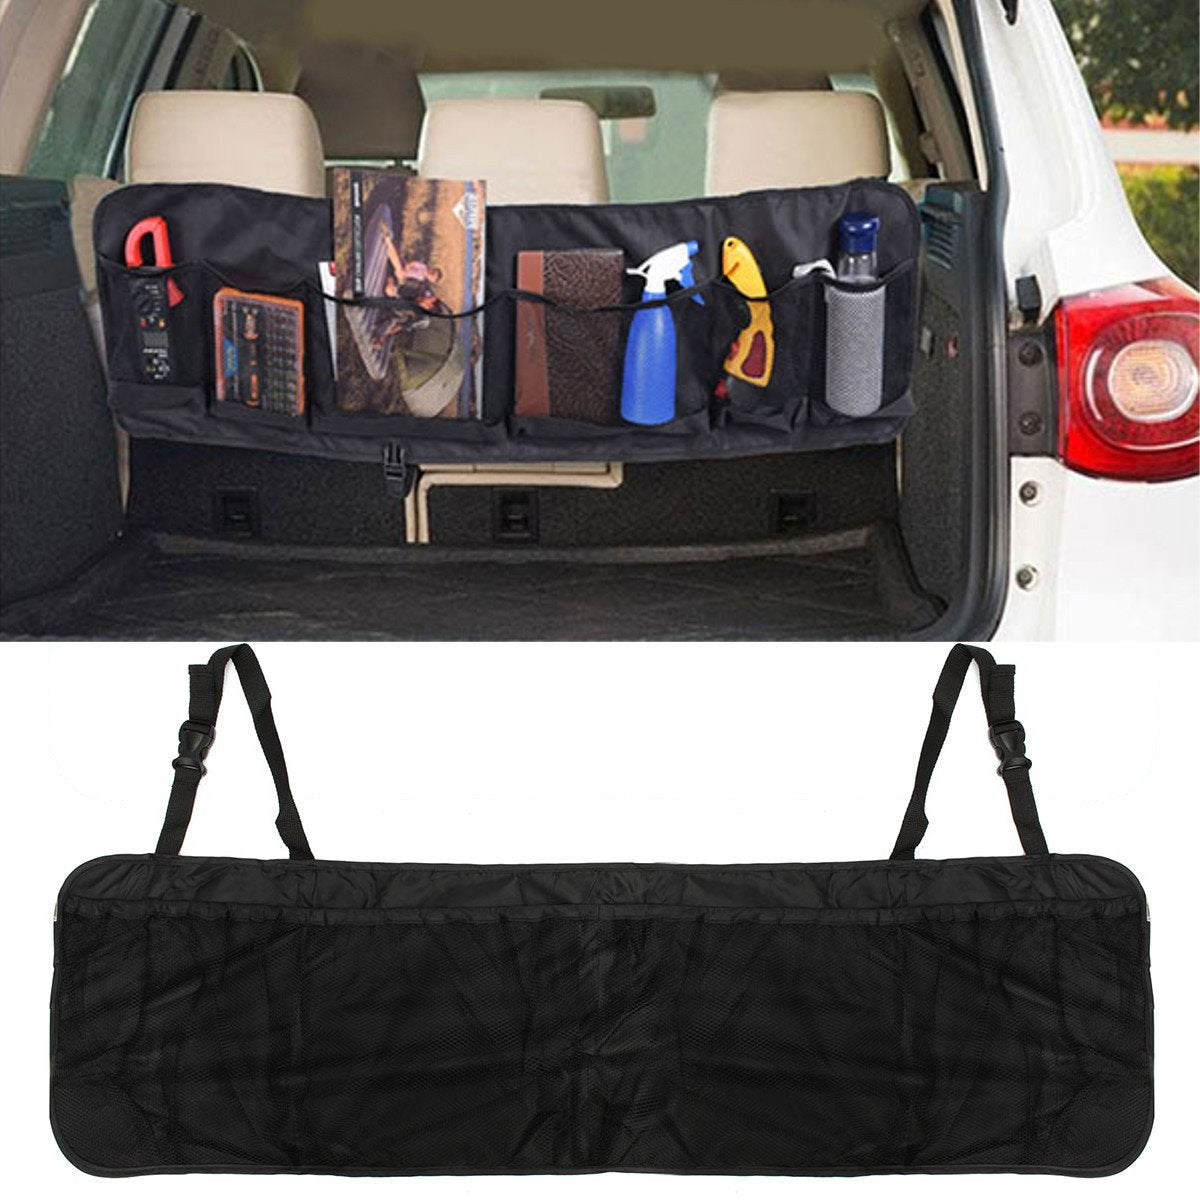 110 x 34cm Car Seat Back Tidy Organiser Multi-Pocket Auto Travel Hanging Storage Bag Holder Auto Accessories